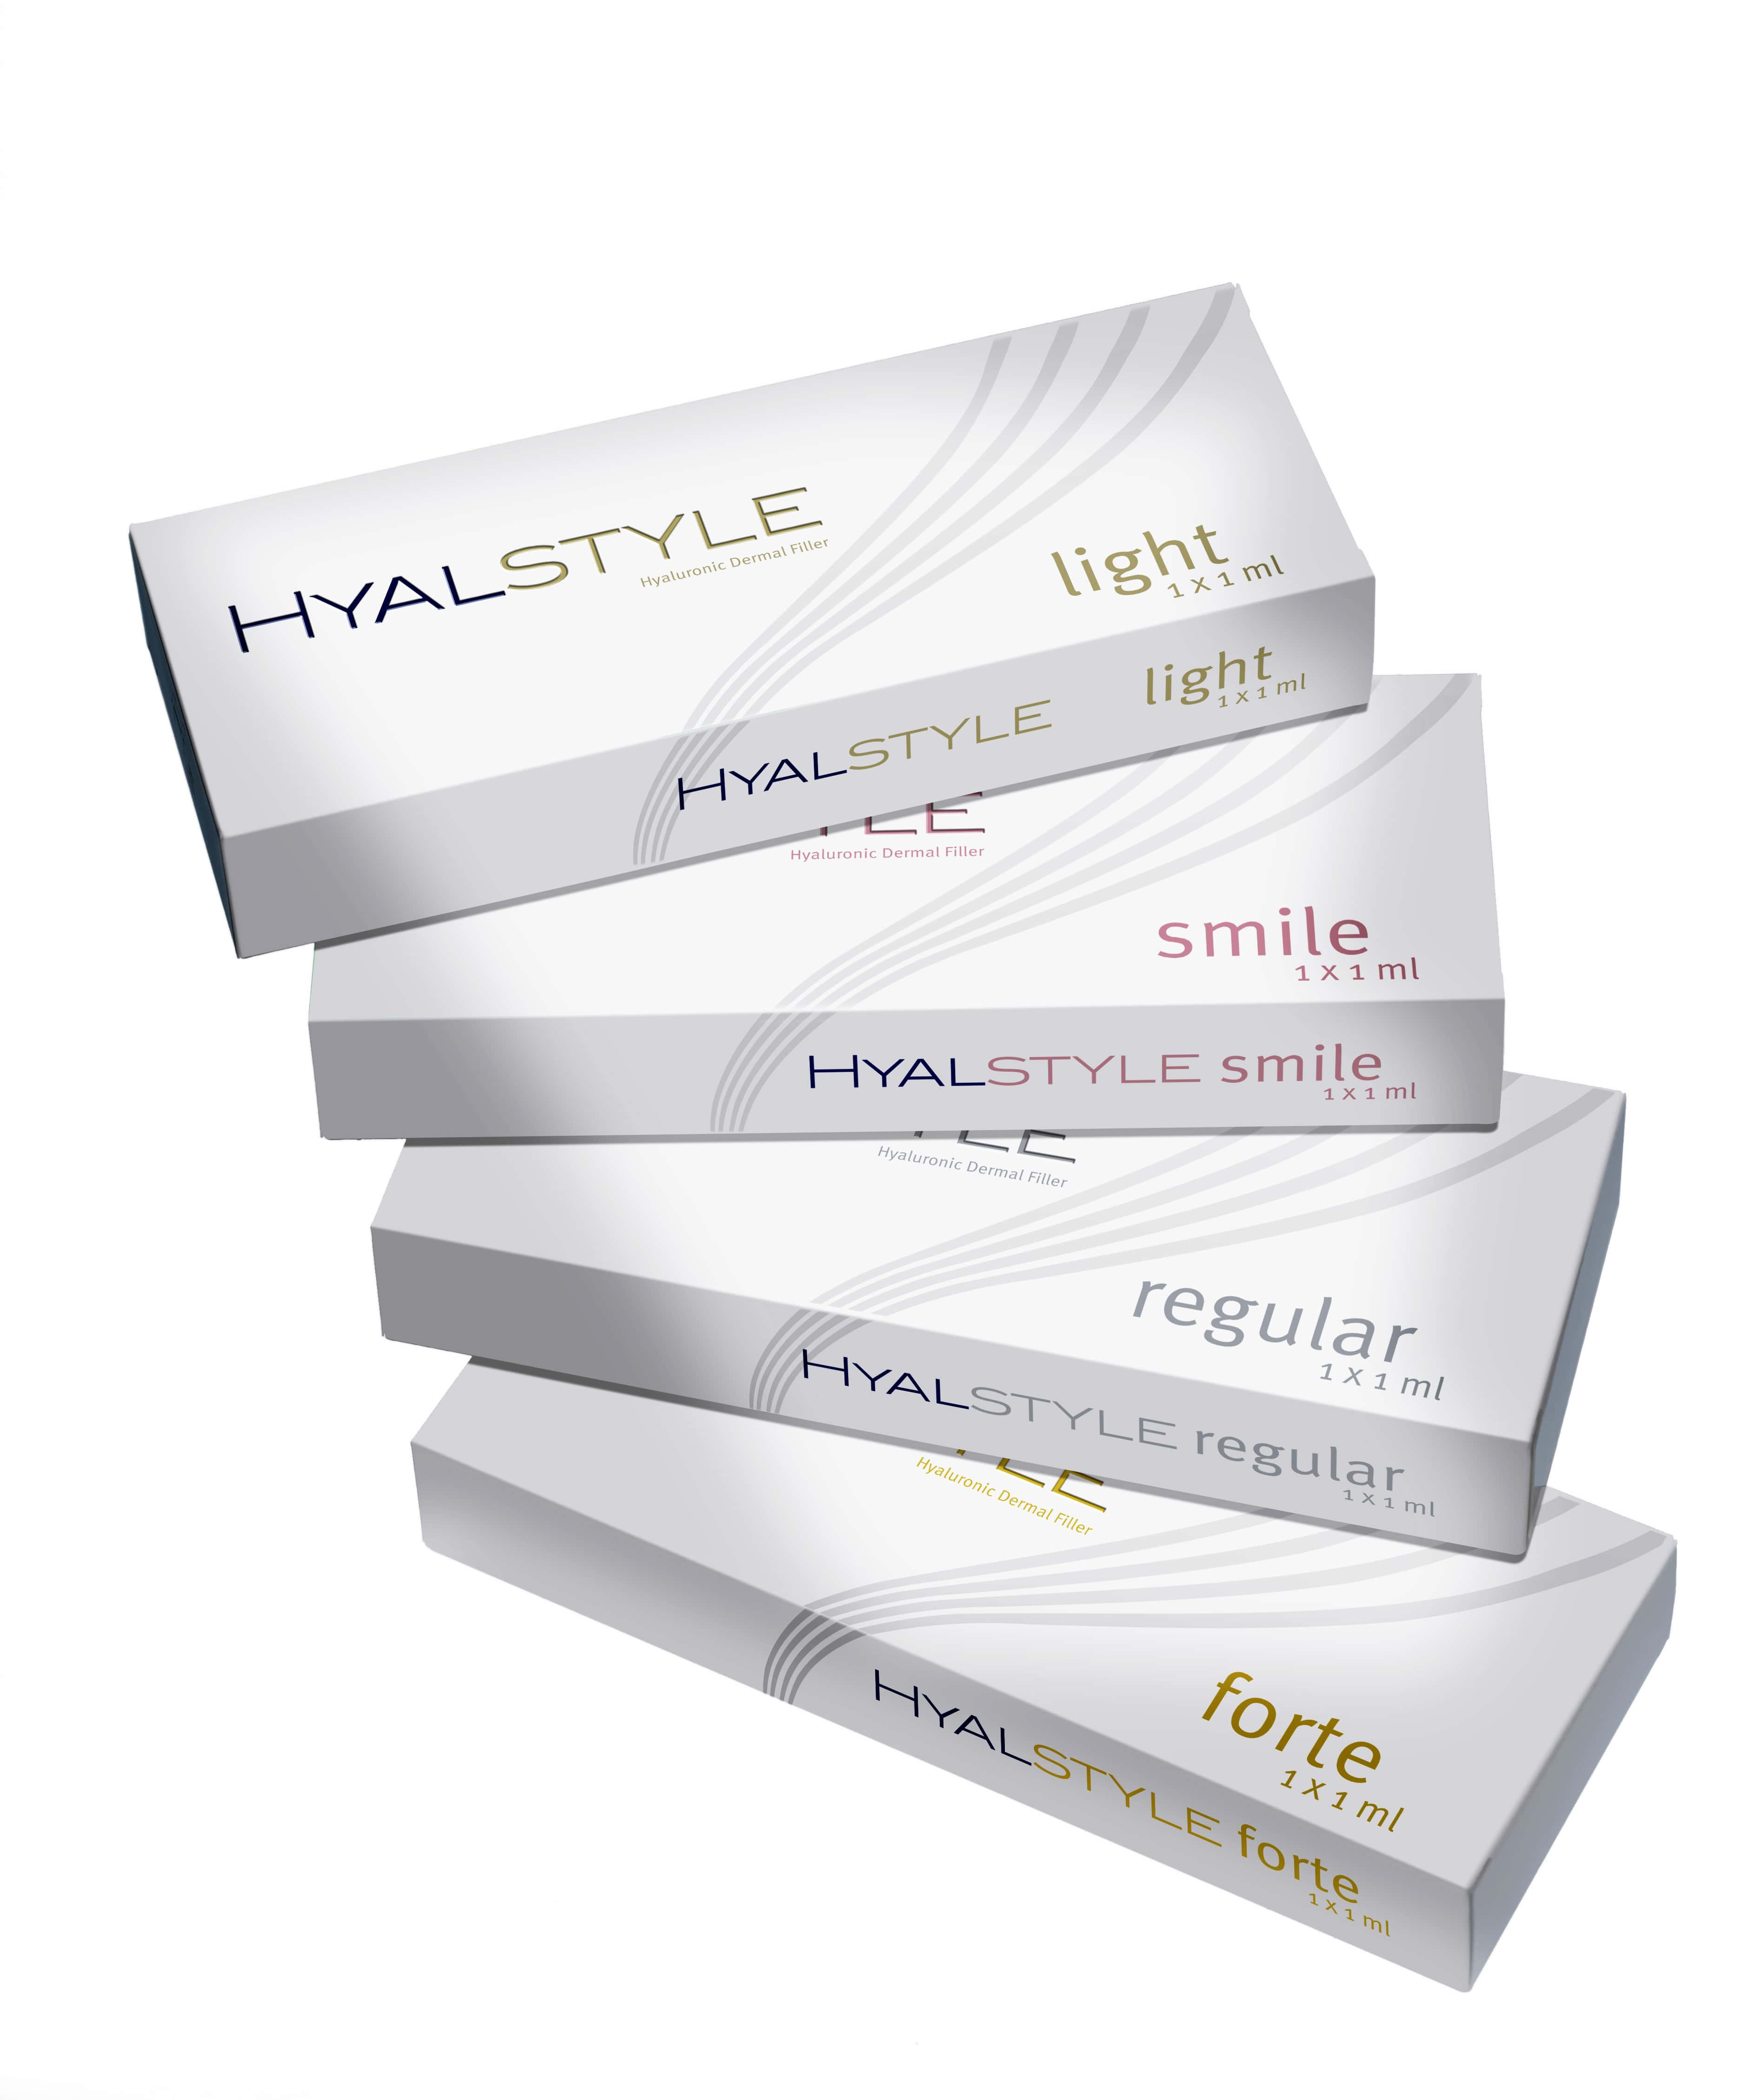 HyalStyle_Pack_017_1214